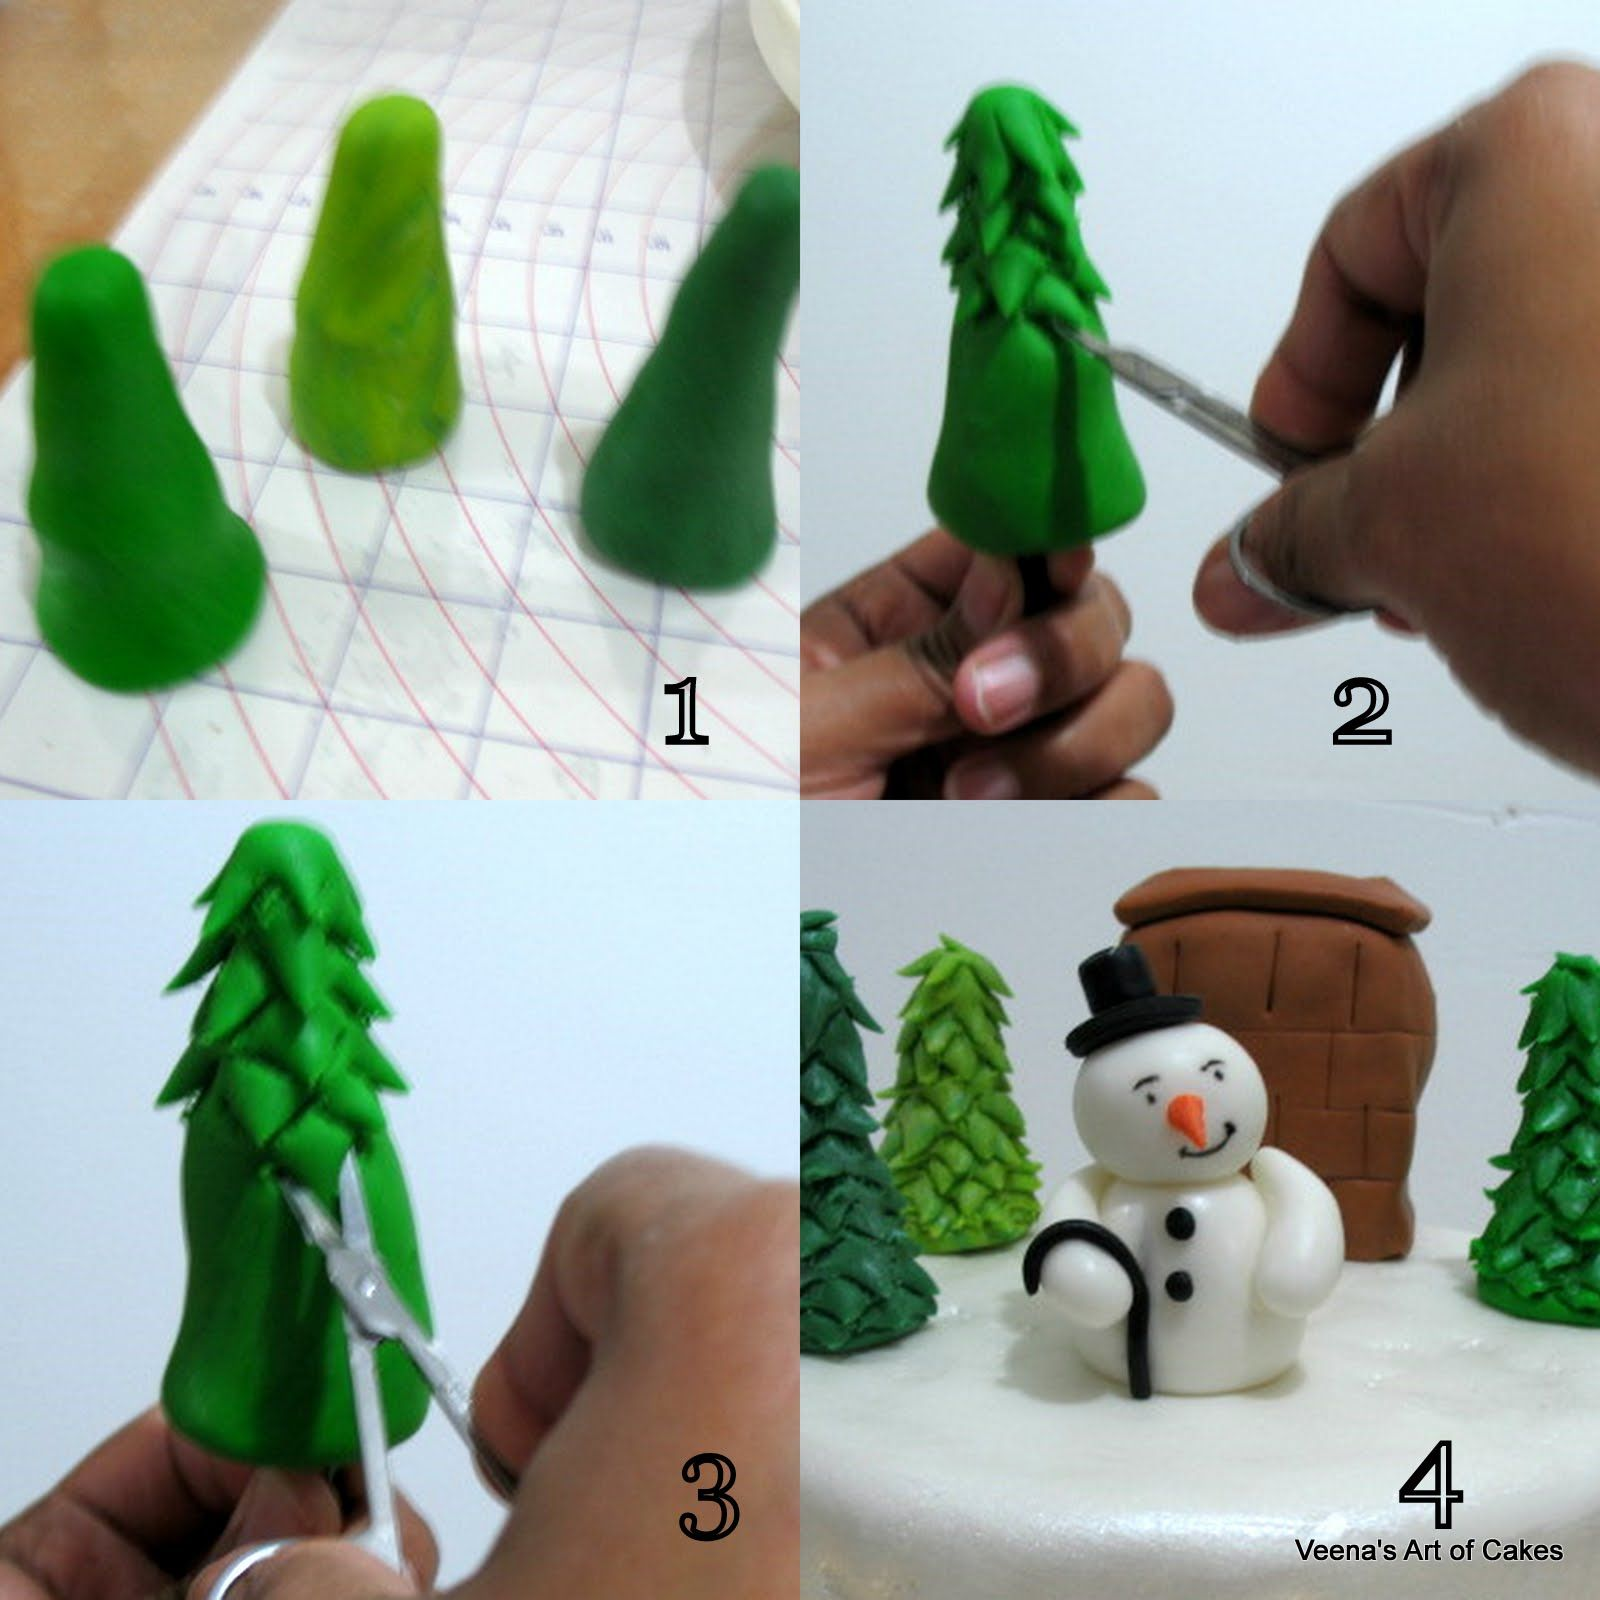 How to make a father christmas cake decoration - Veena S Art Of Cakes My Christmas Cake With Gumpaste Snowman Gumpaste Santa Christmas